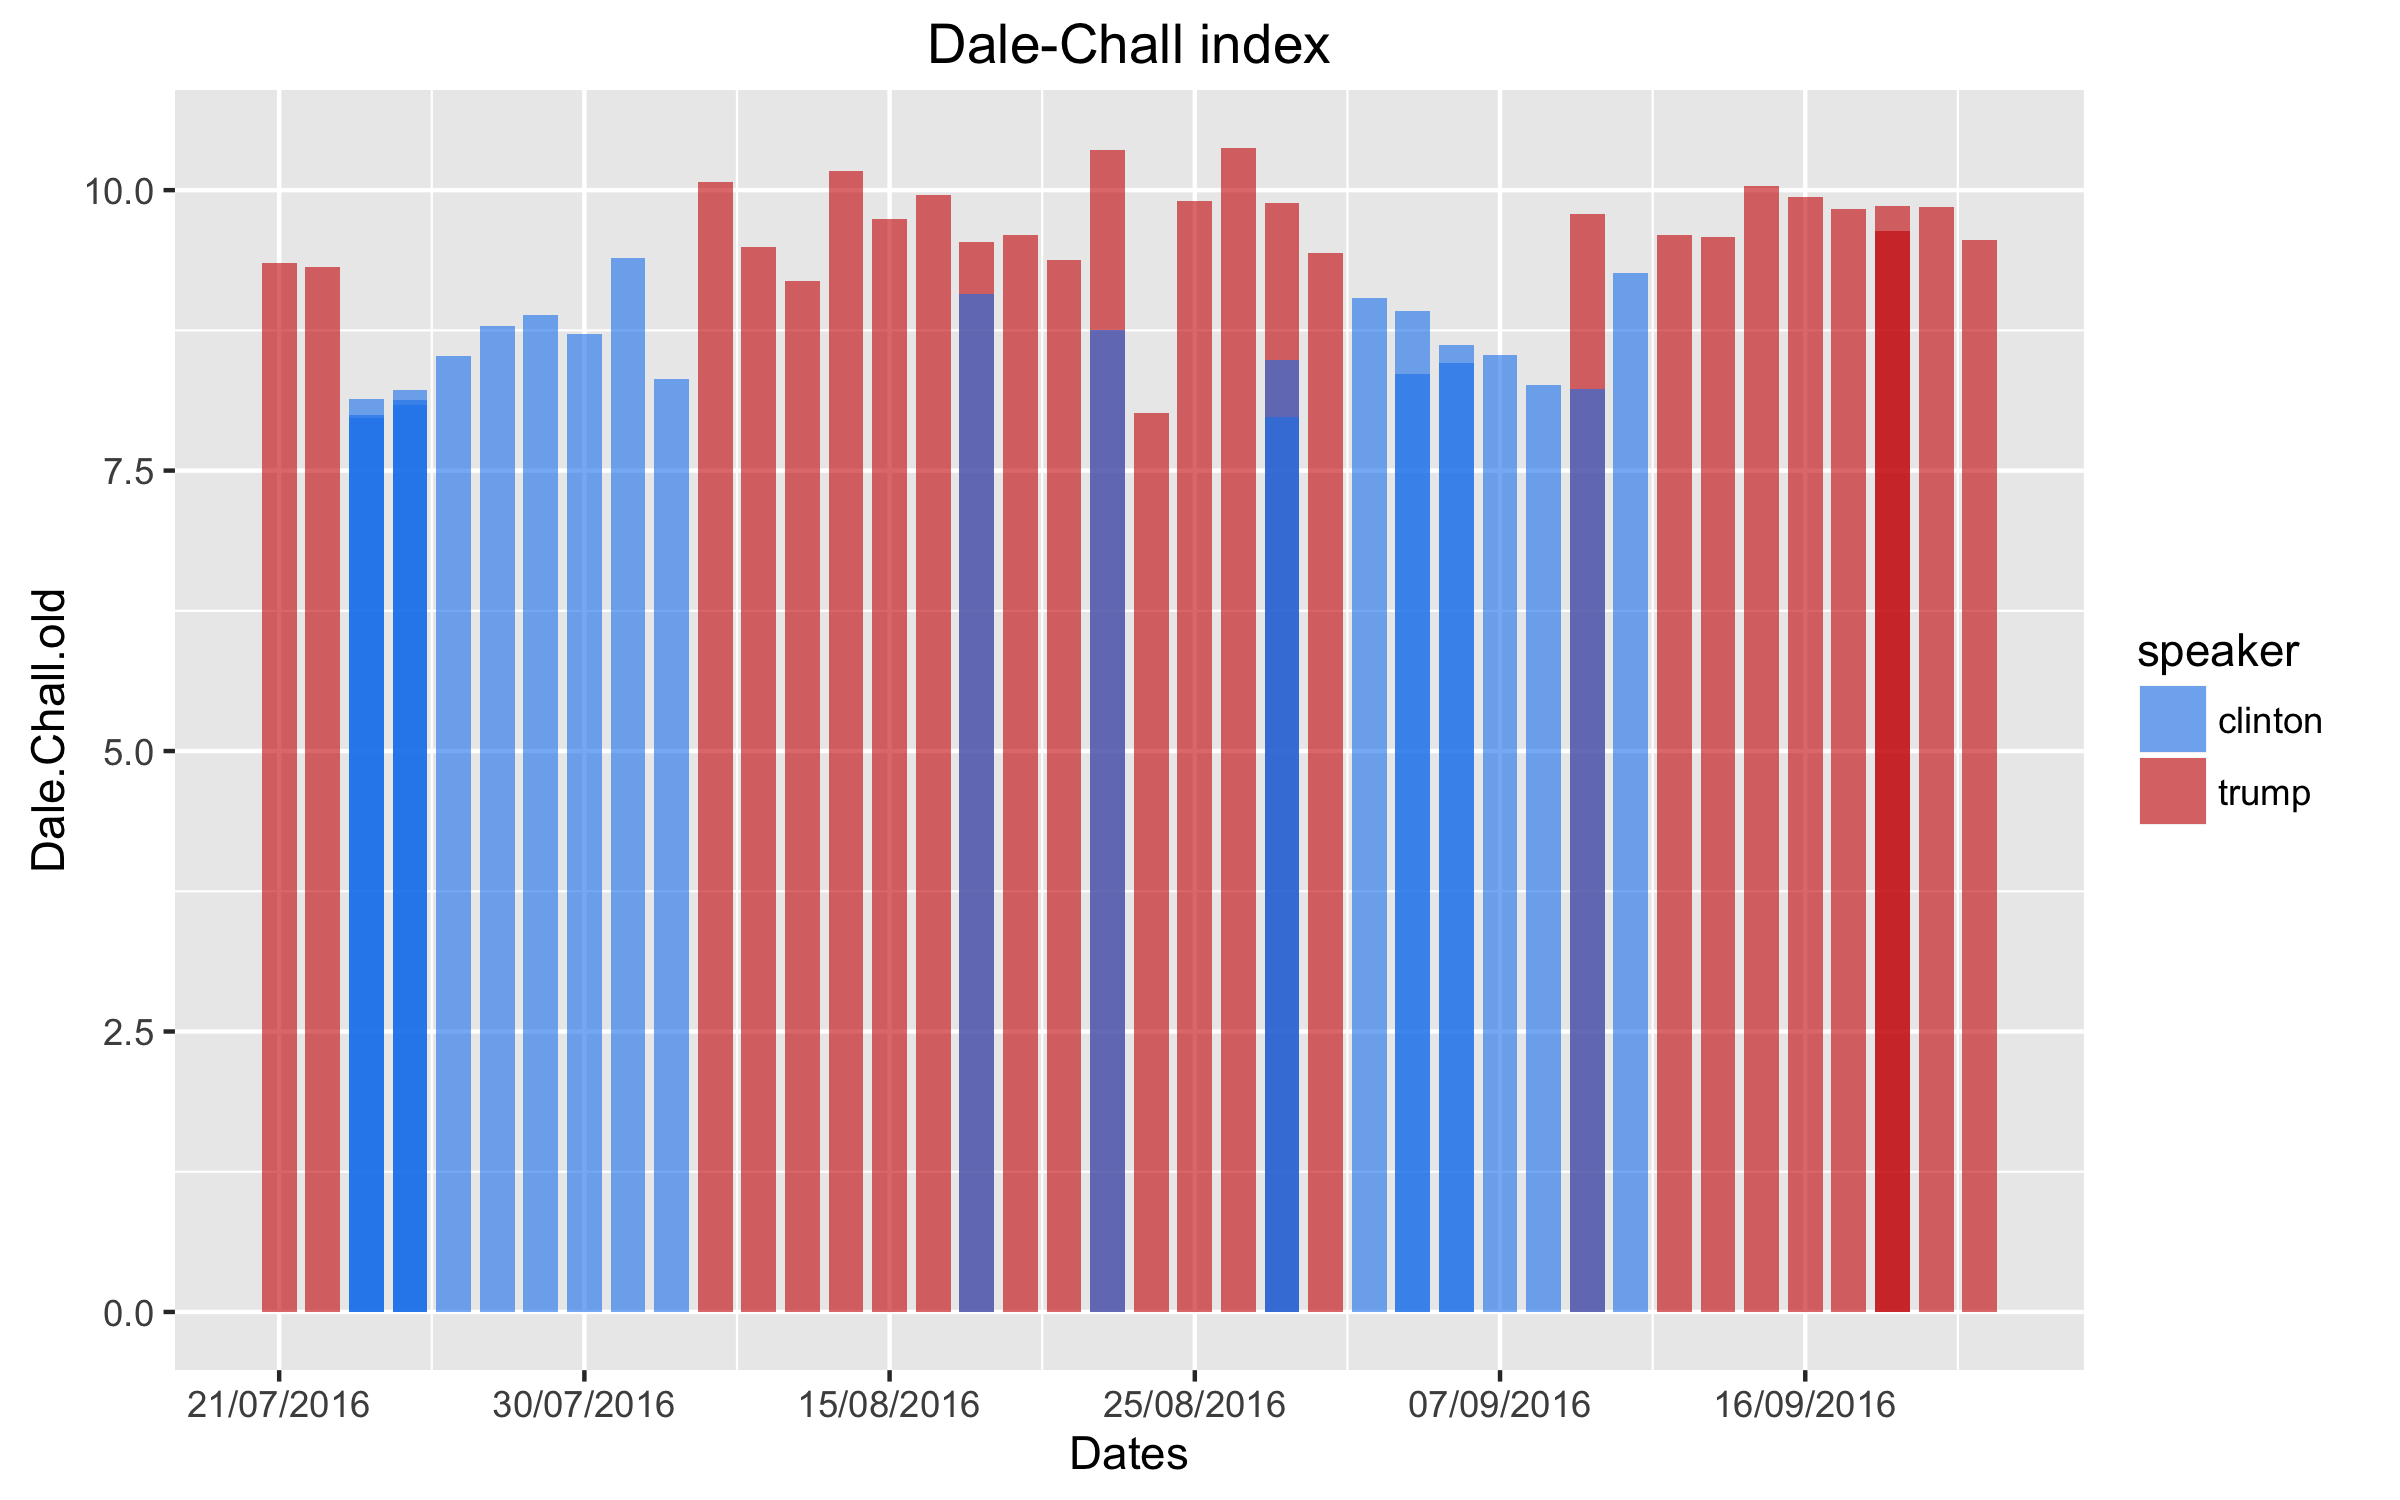 Figure 2 Dale-Chall index score for Clinton and Trump speeches